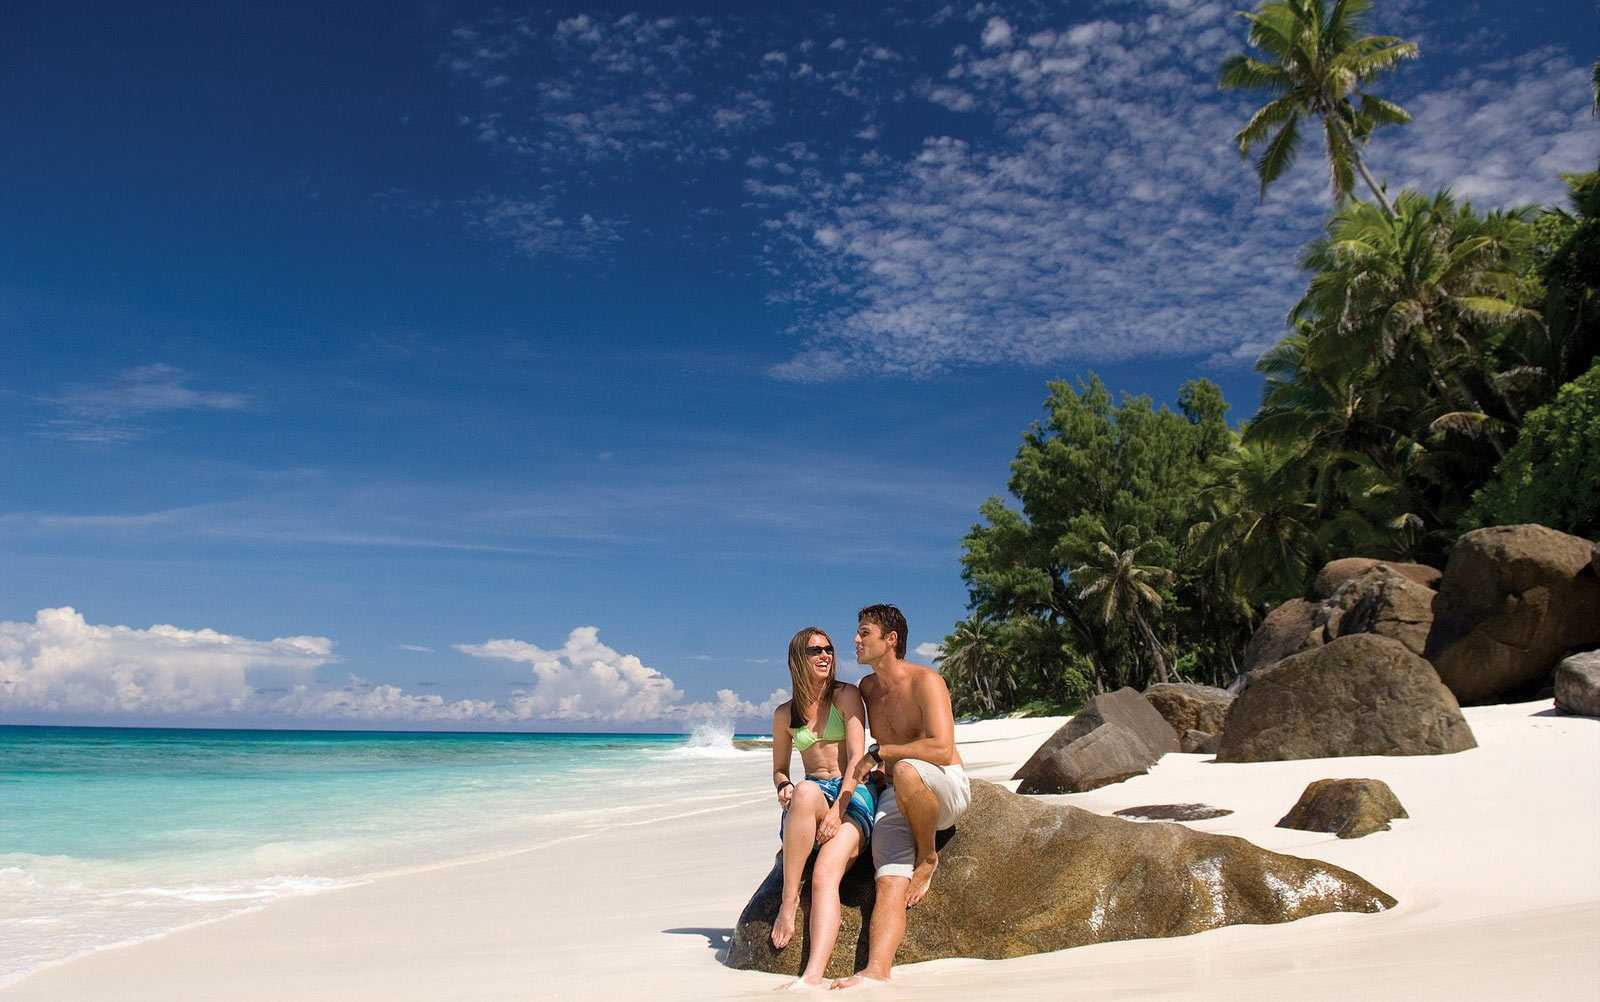 Seychelles is where British royalty honeymooned and is now a popular honeymoon or couple destination.